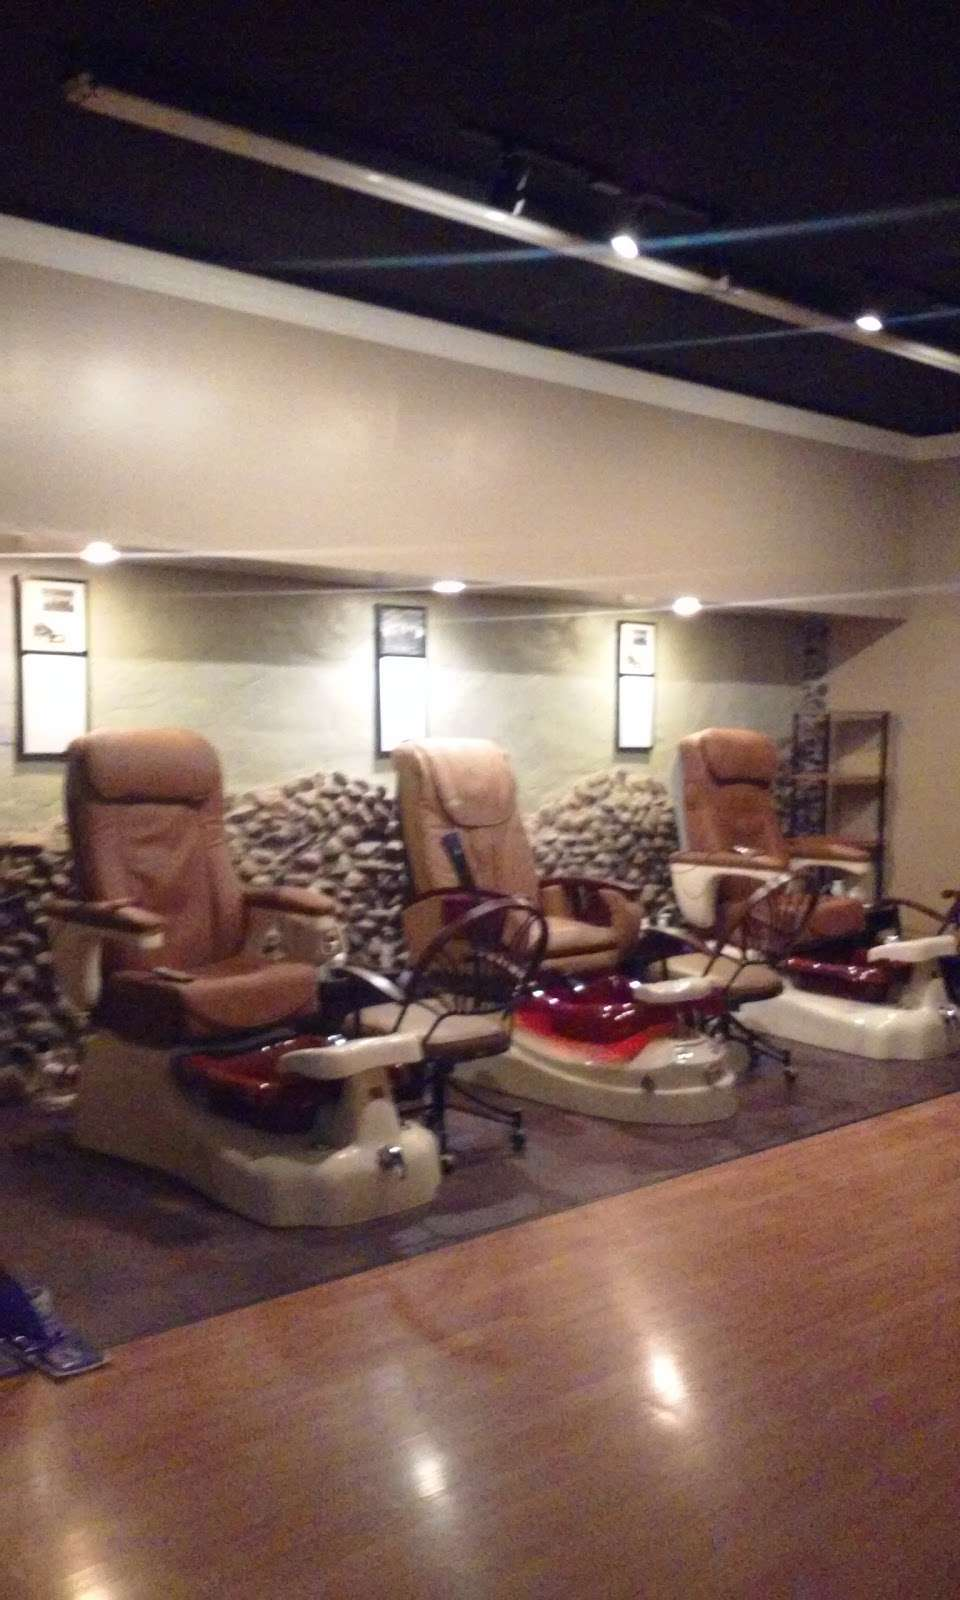 Pedi Lounge Nail Salon & Spa - hair care  | Photo 3 of 10 | Address: 1827 N Madison Ave Suite B, Anderson, IN 46011, USA | Phone: (765) 393-0015